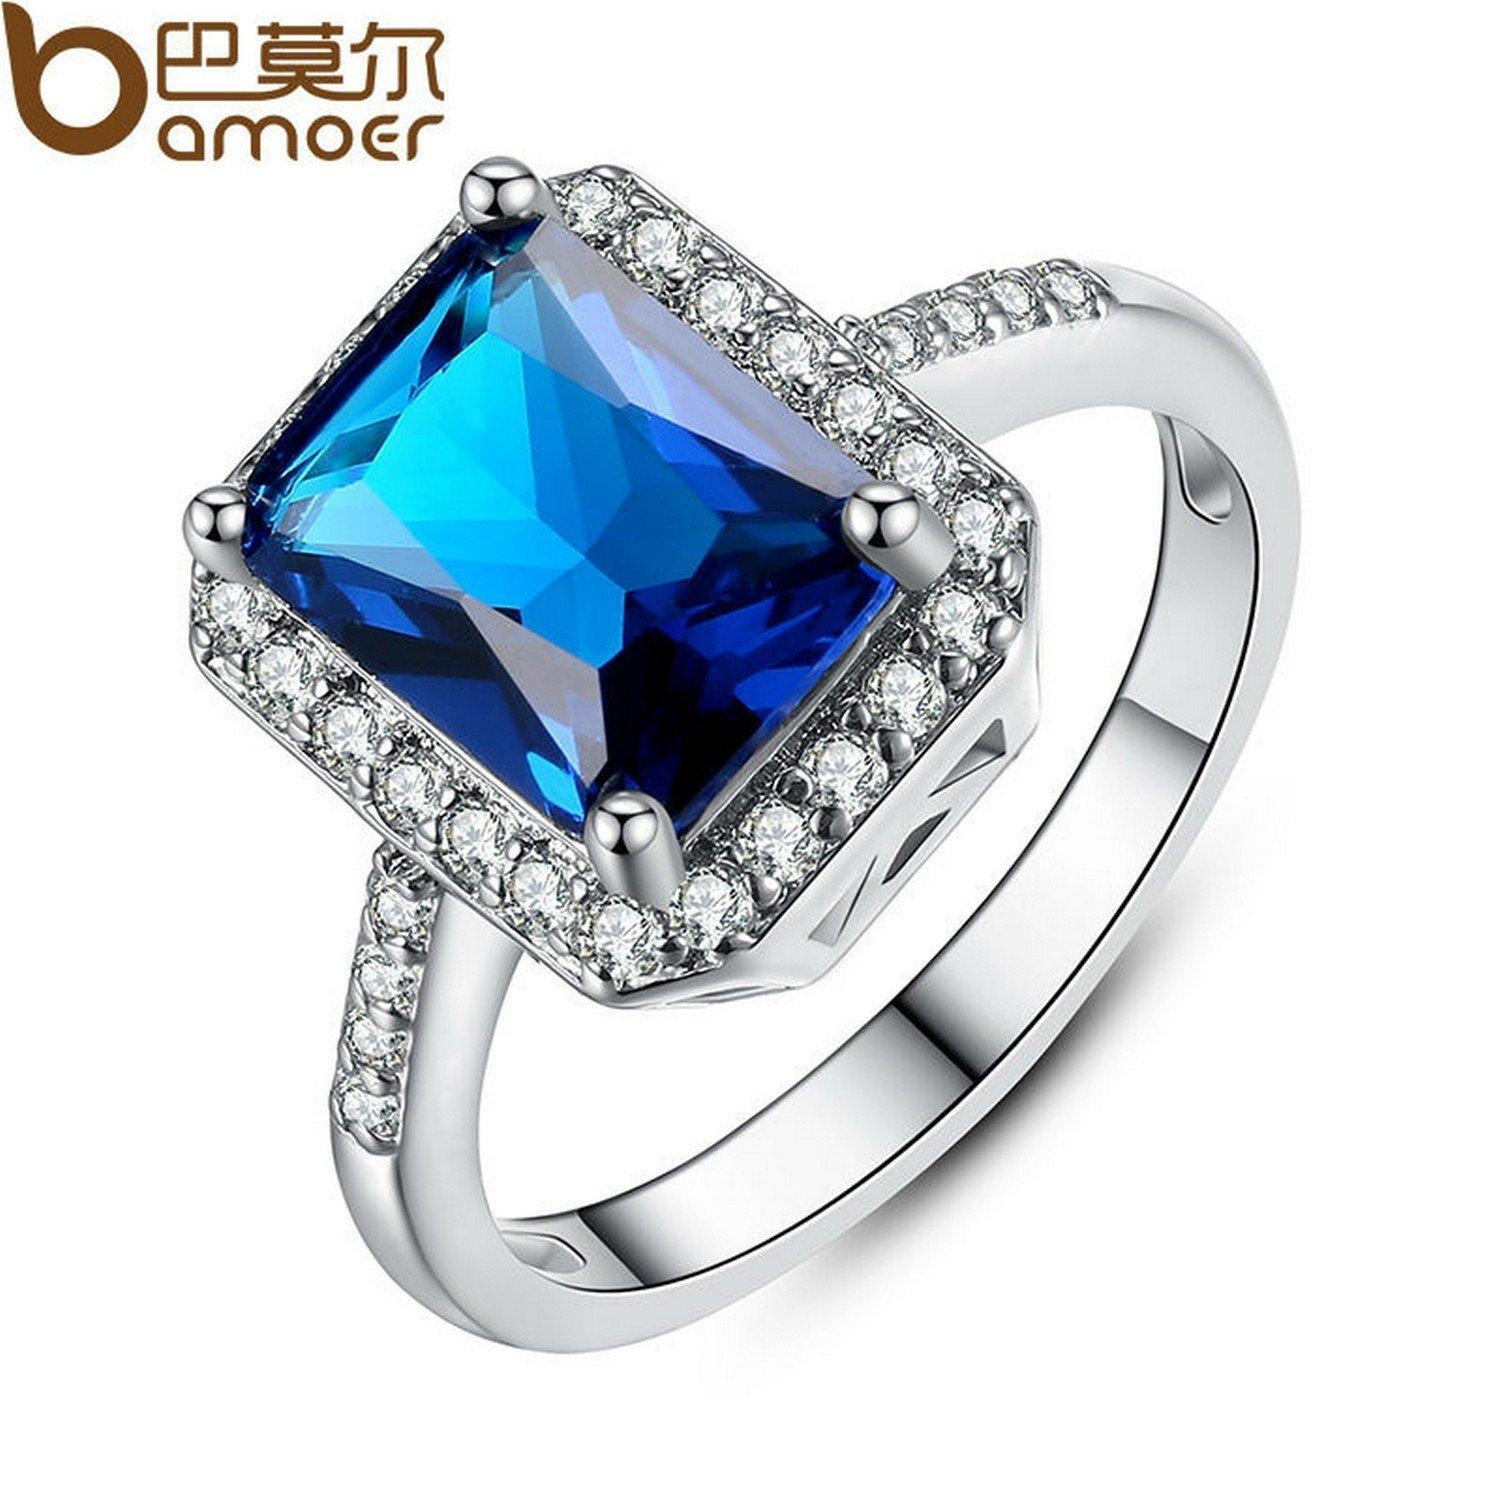 Slyq Jewelry Zircon Platinum Gold Plated Blue Geometric Rhinestone Surround Crystals Finger Ring Fashion Jewelry YIR059